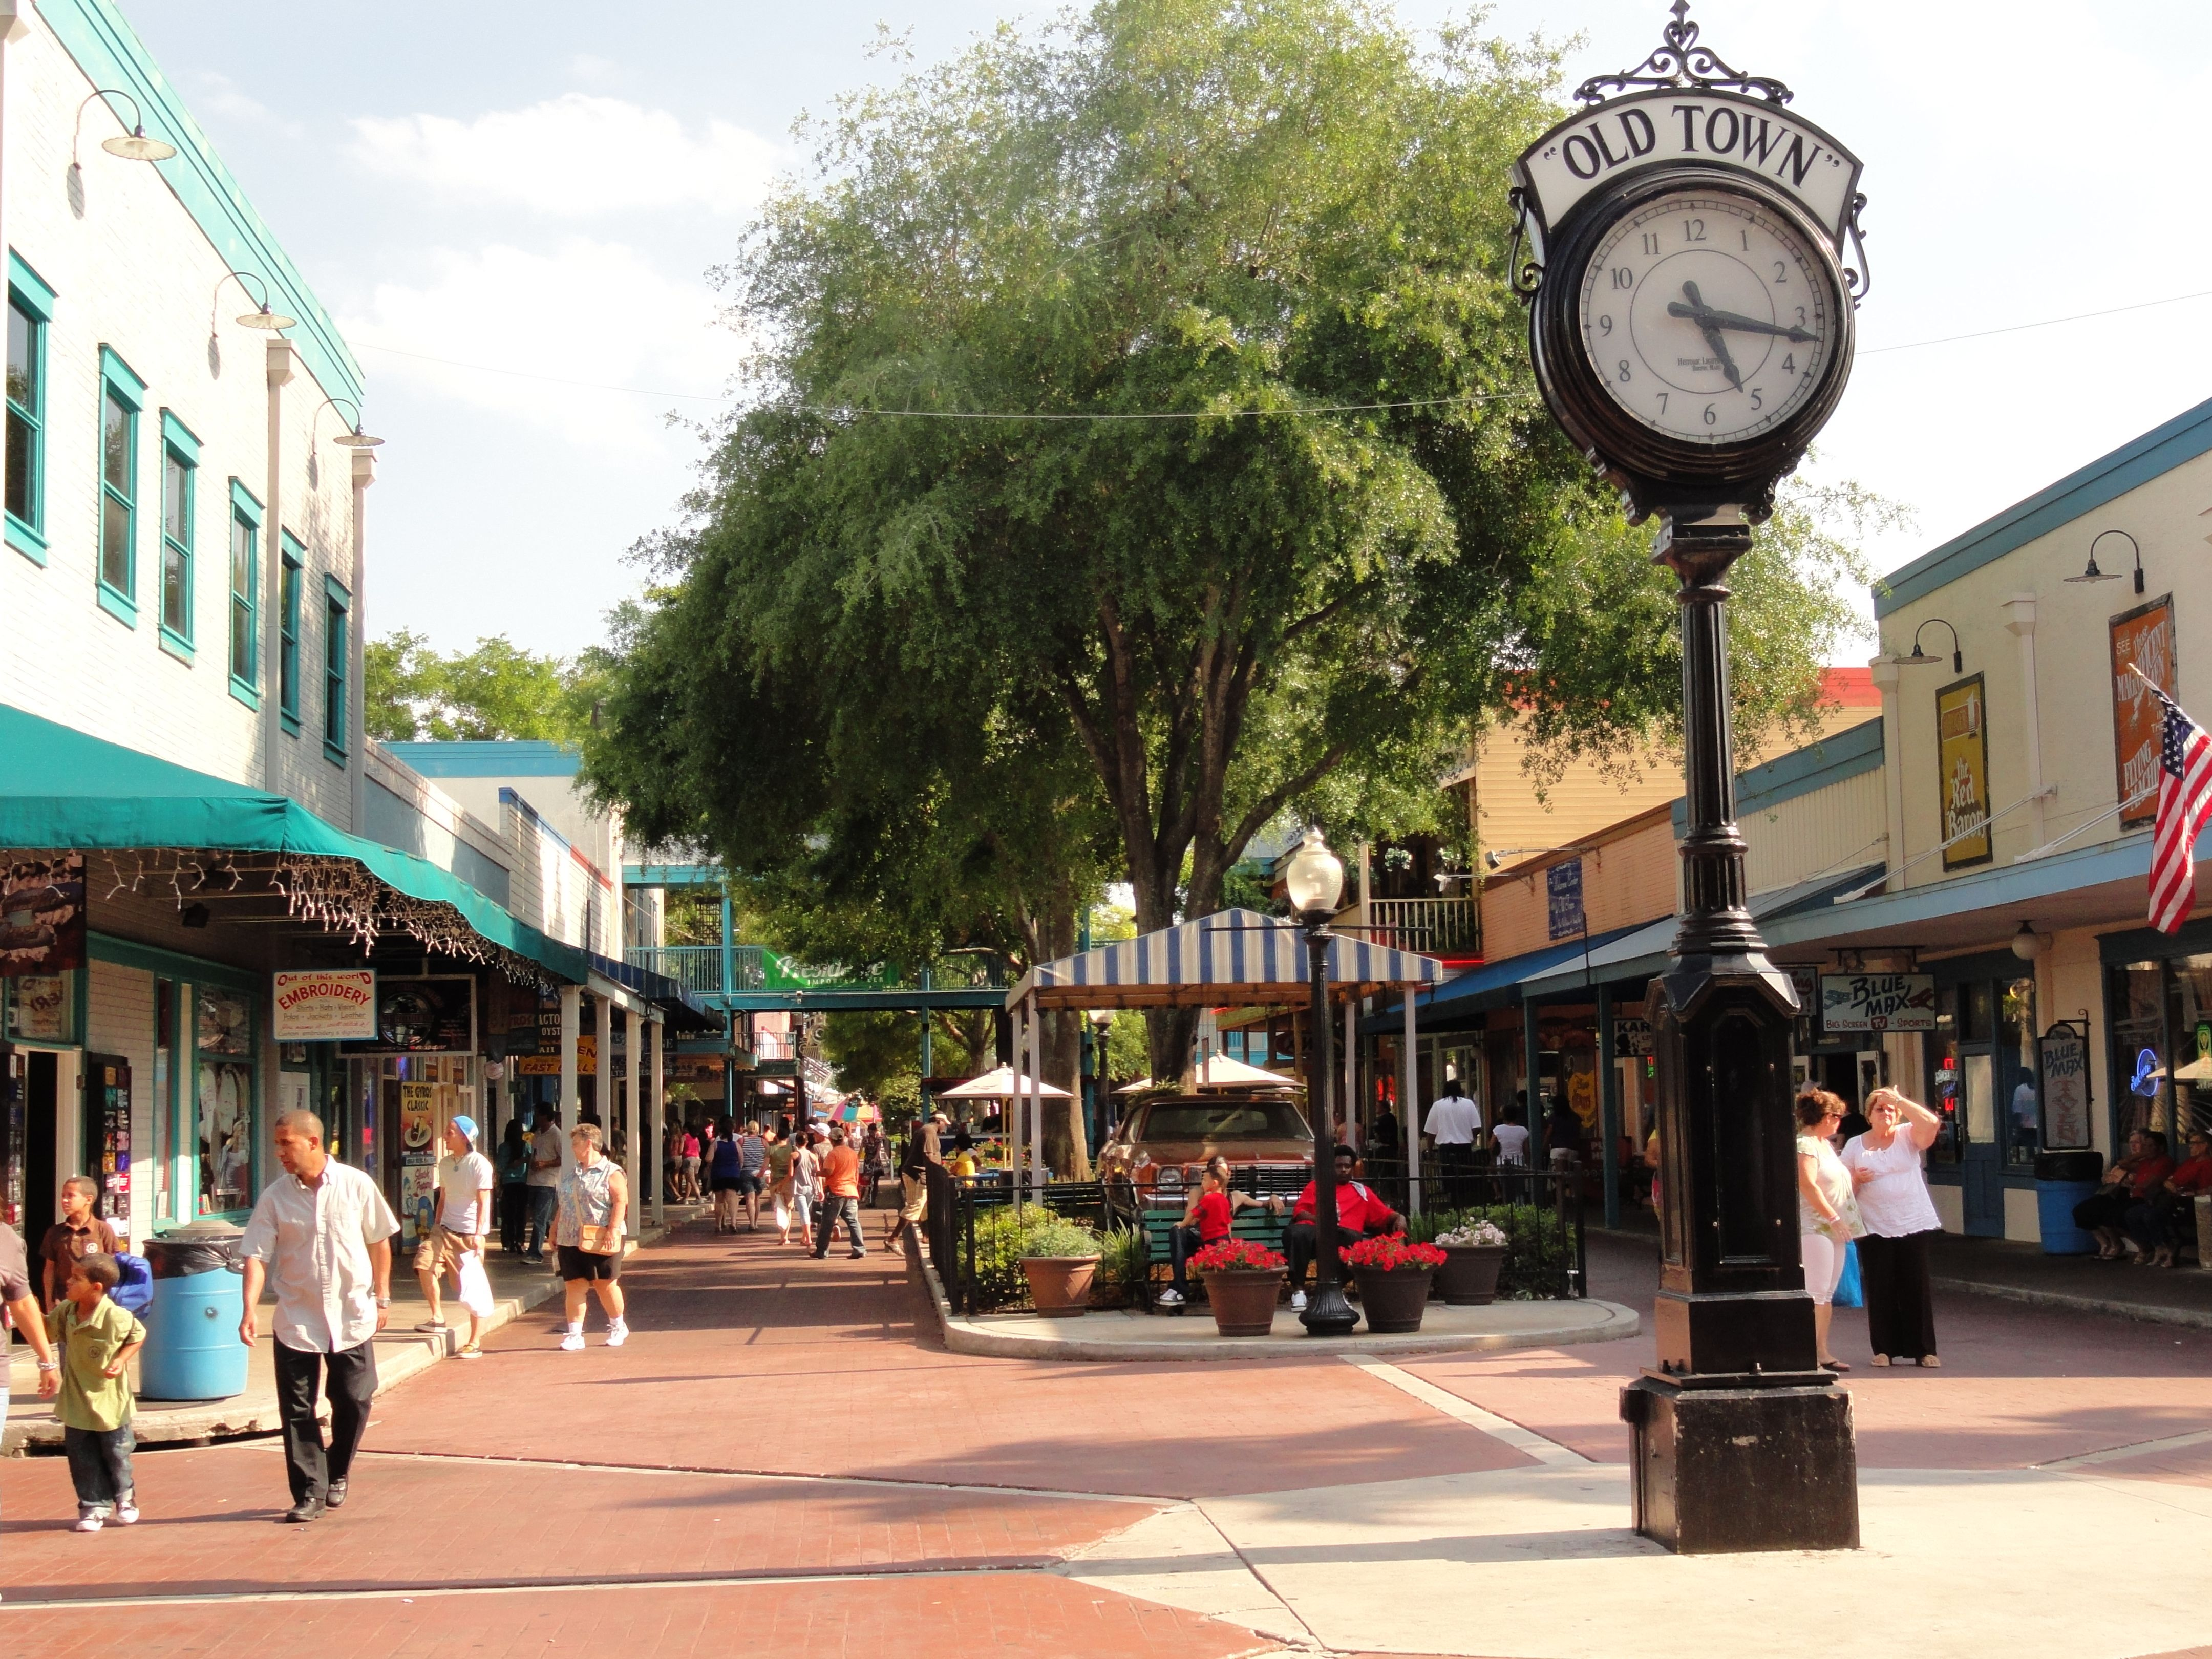 Old Town In Kissimmee Florida Is Not A Real But Replica Of Small Streets With Specialty S Pubs And Restaurants There Are Also Amut